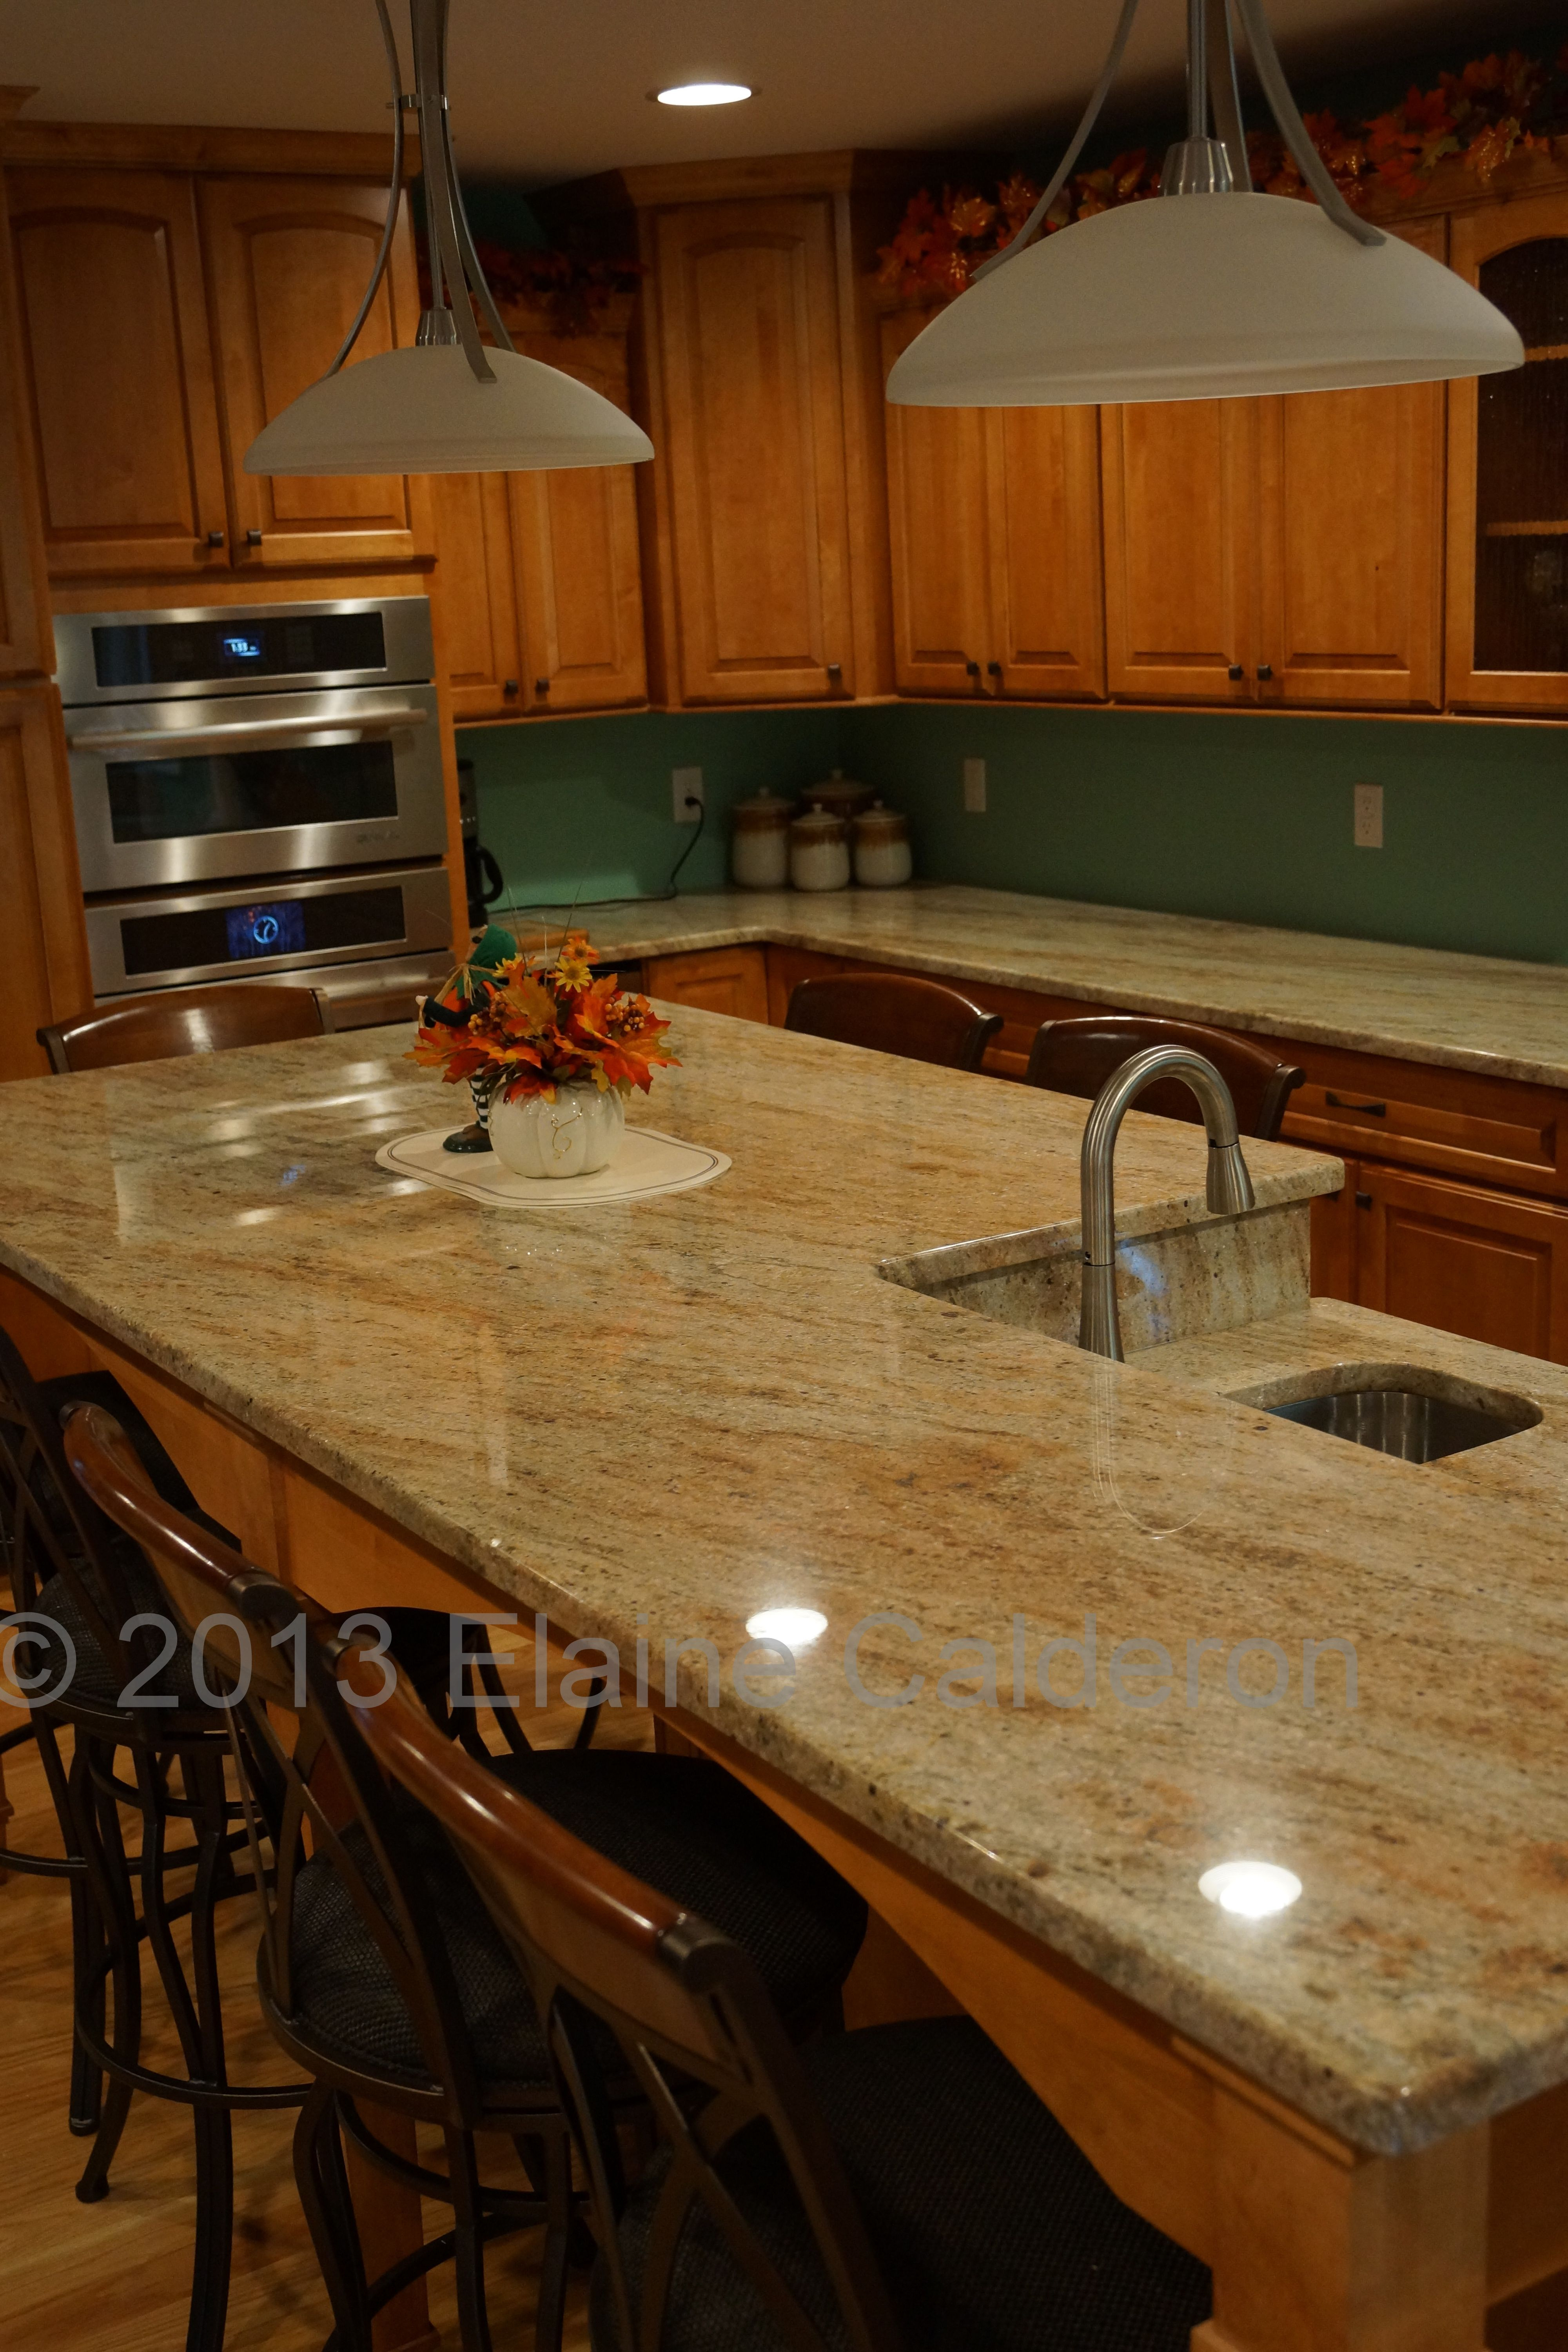 Colonial Cream Granite Kitchen Subway Tile And Strip Of Mosaic On Colonial Cream Granite Decor